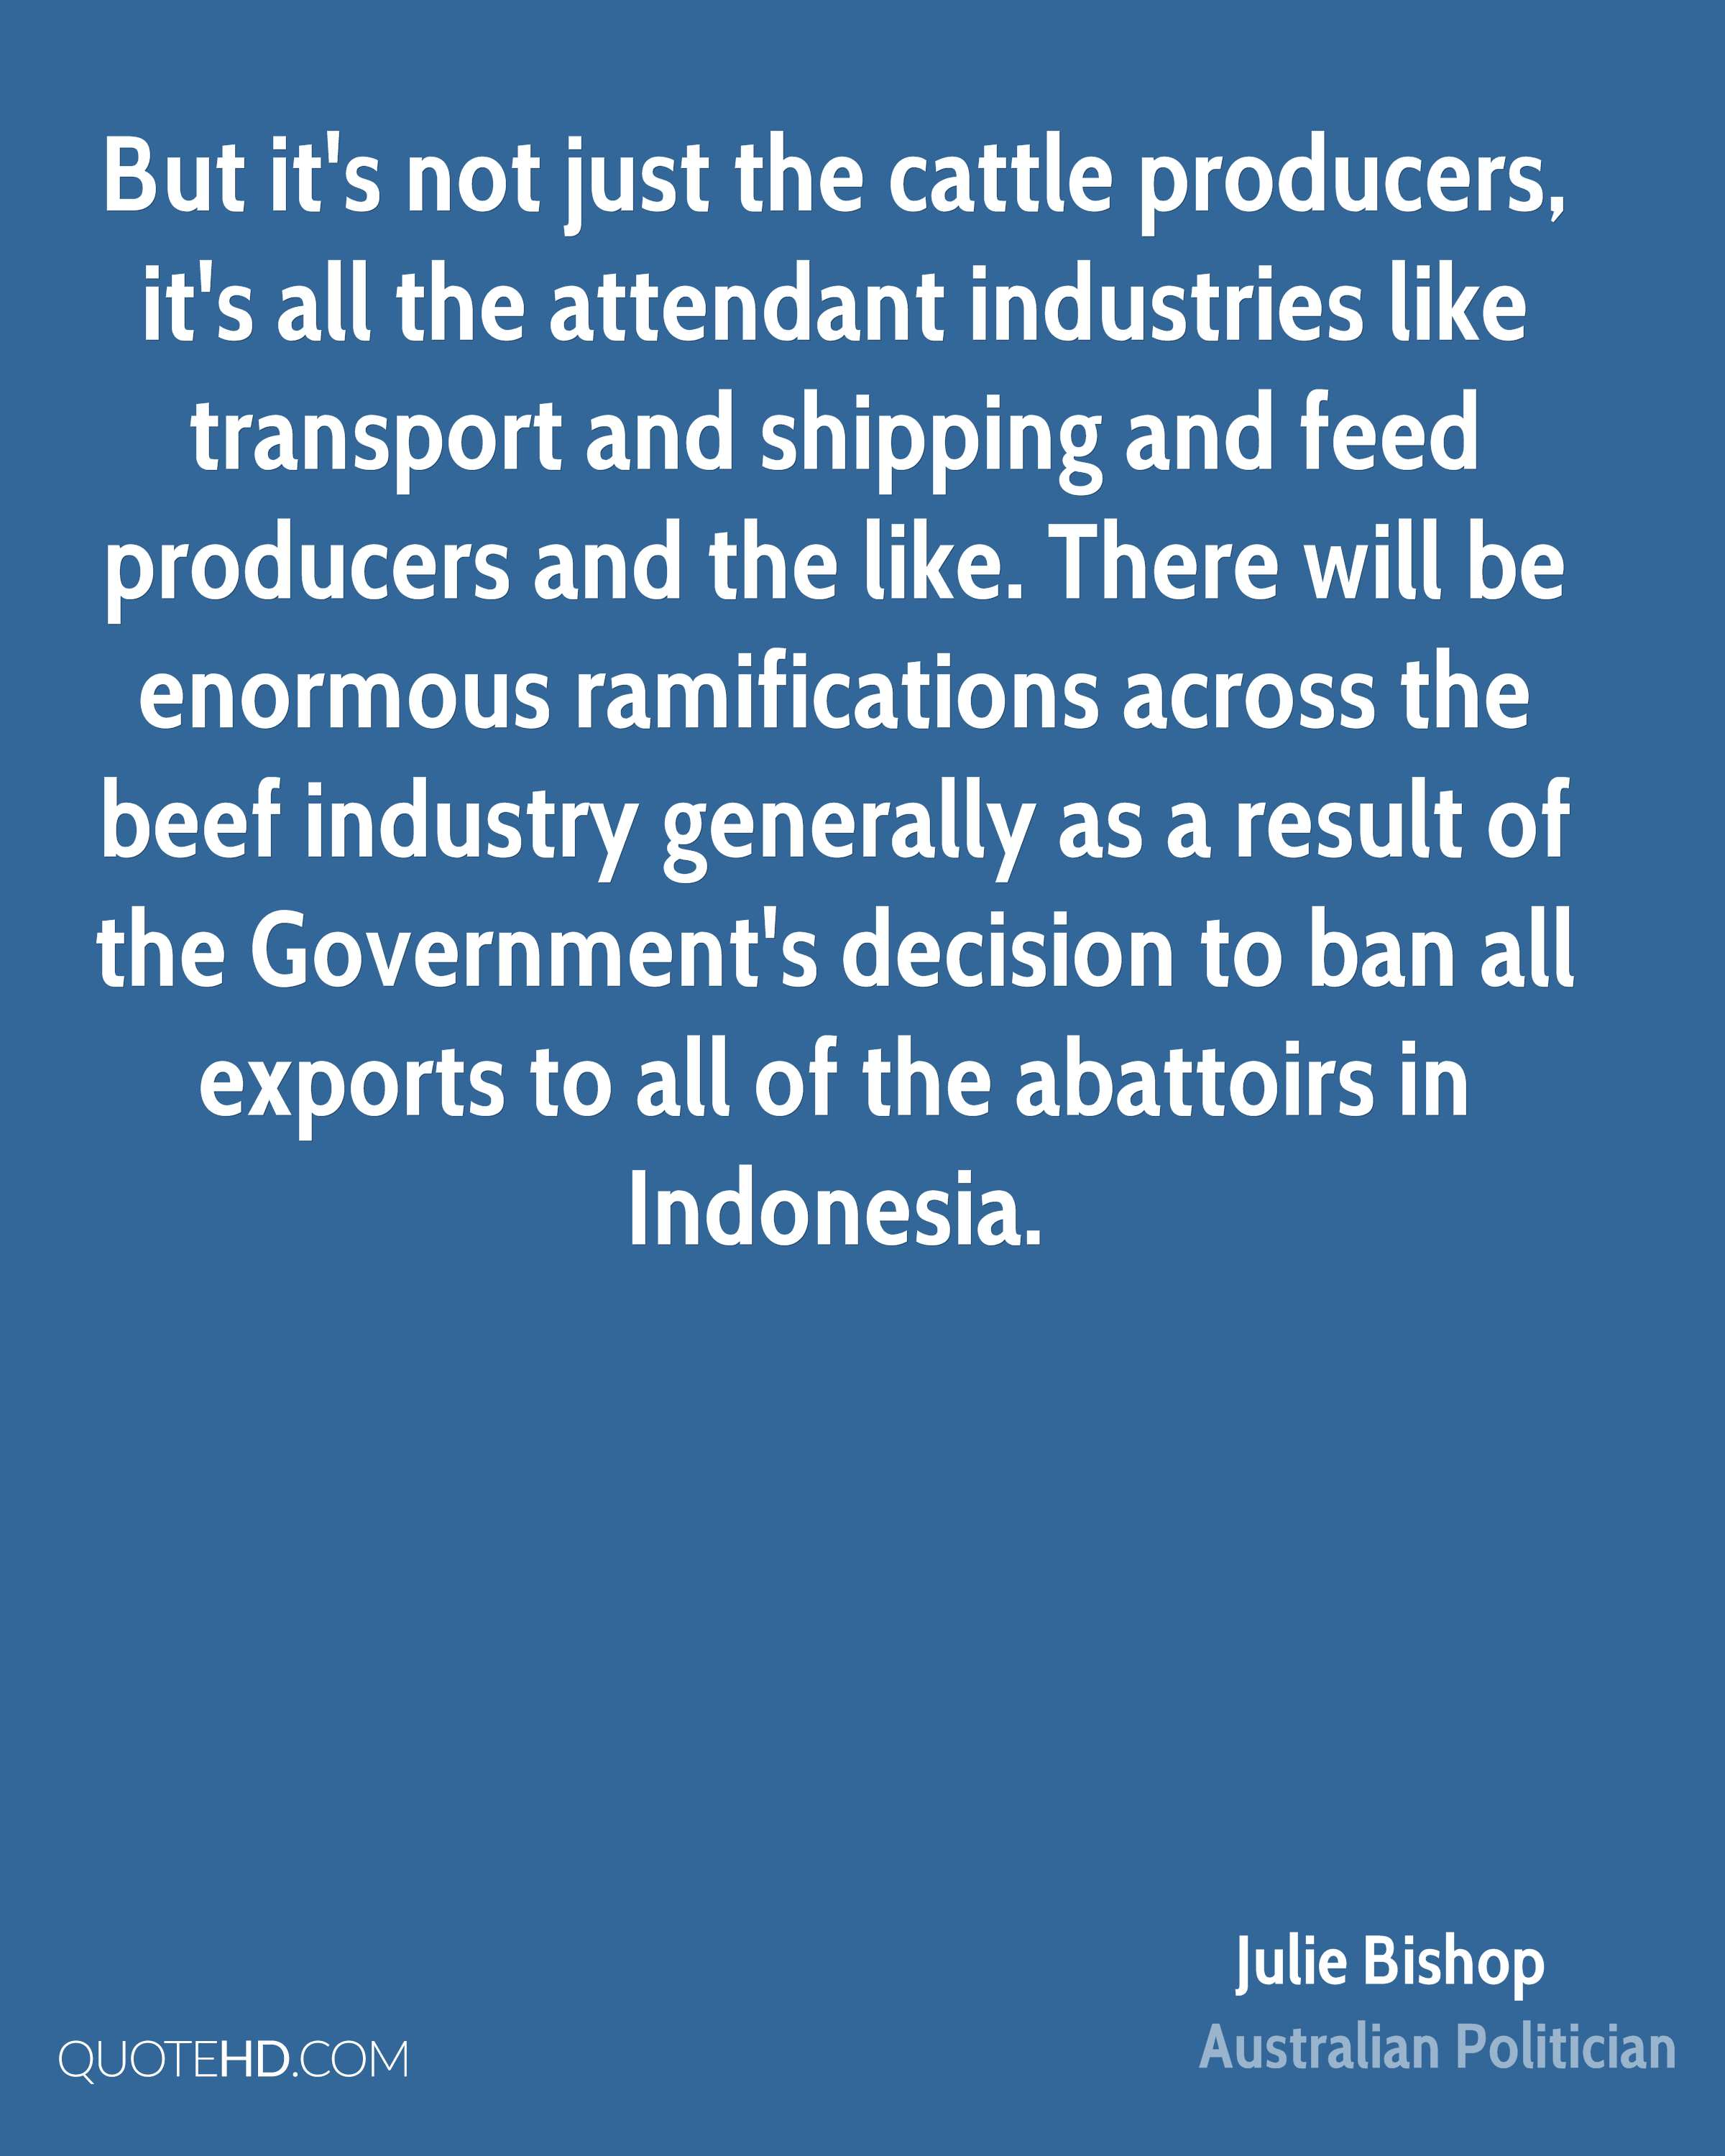 But it's not just the cattle producers, it's all the attendant industries like transport and shipping and feed producers and the like. There will be enormous ramifications across the beef industry generally as a result of the Government's decision to ban all exports to all of the abattoirs in Indonesia.